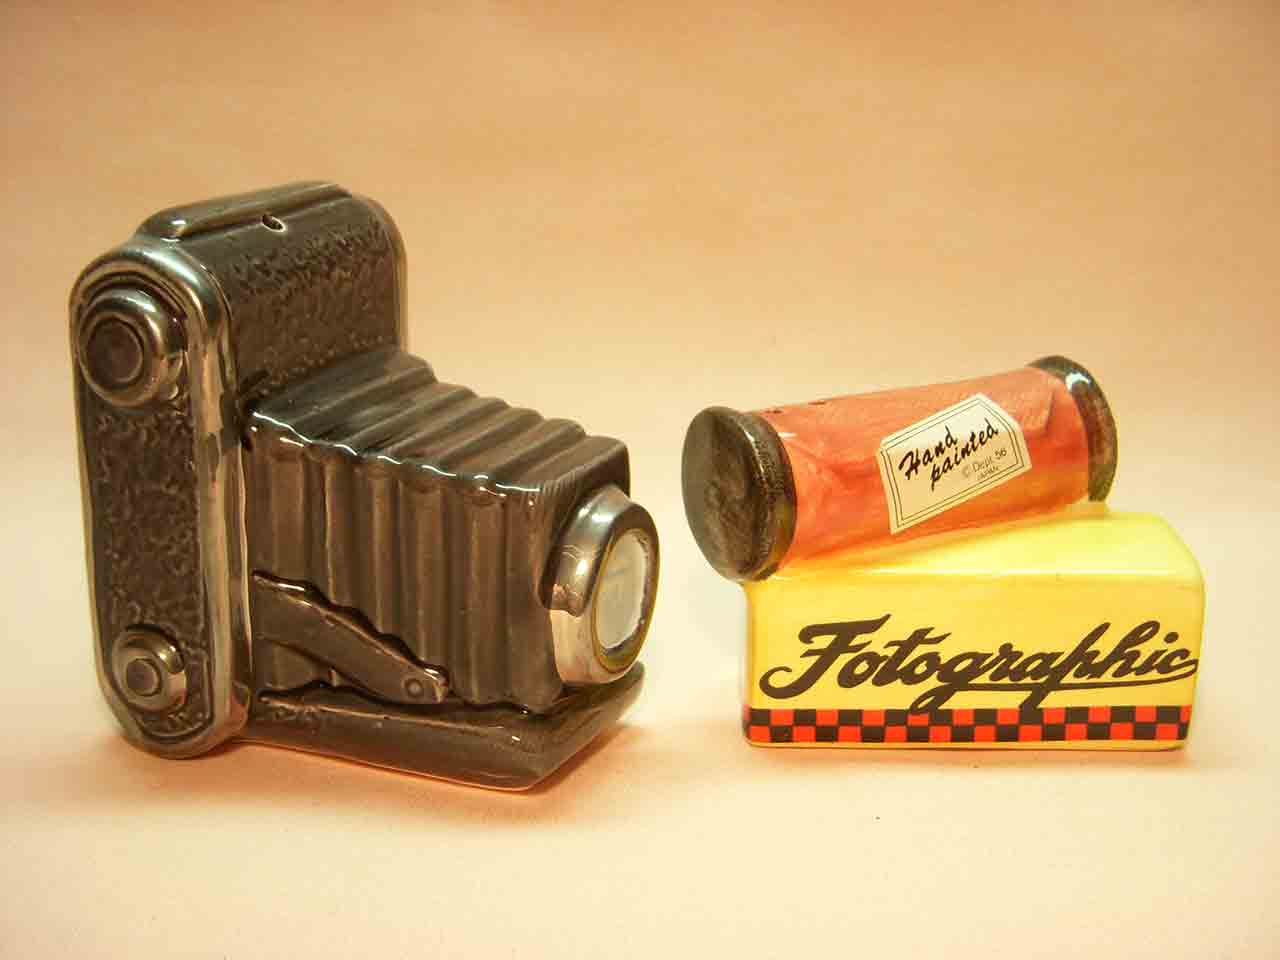 Camera and film salt and pepper shakers